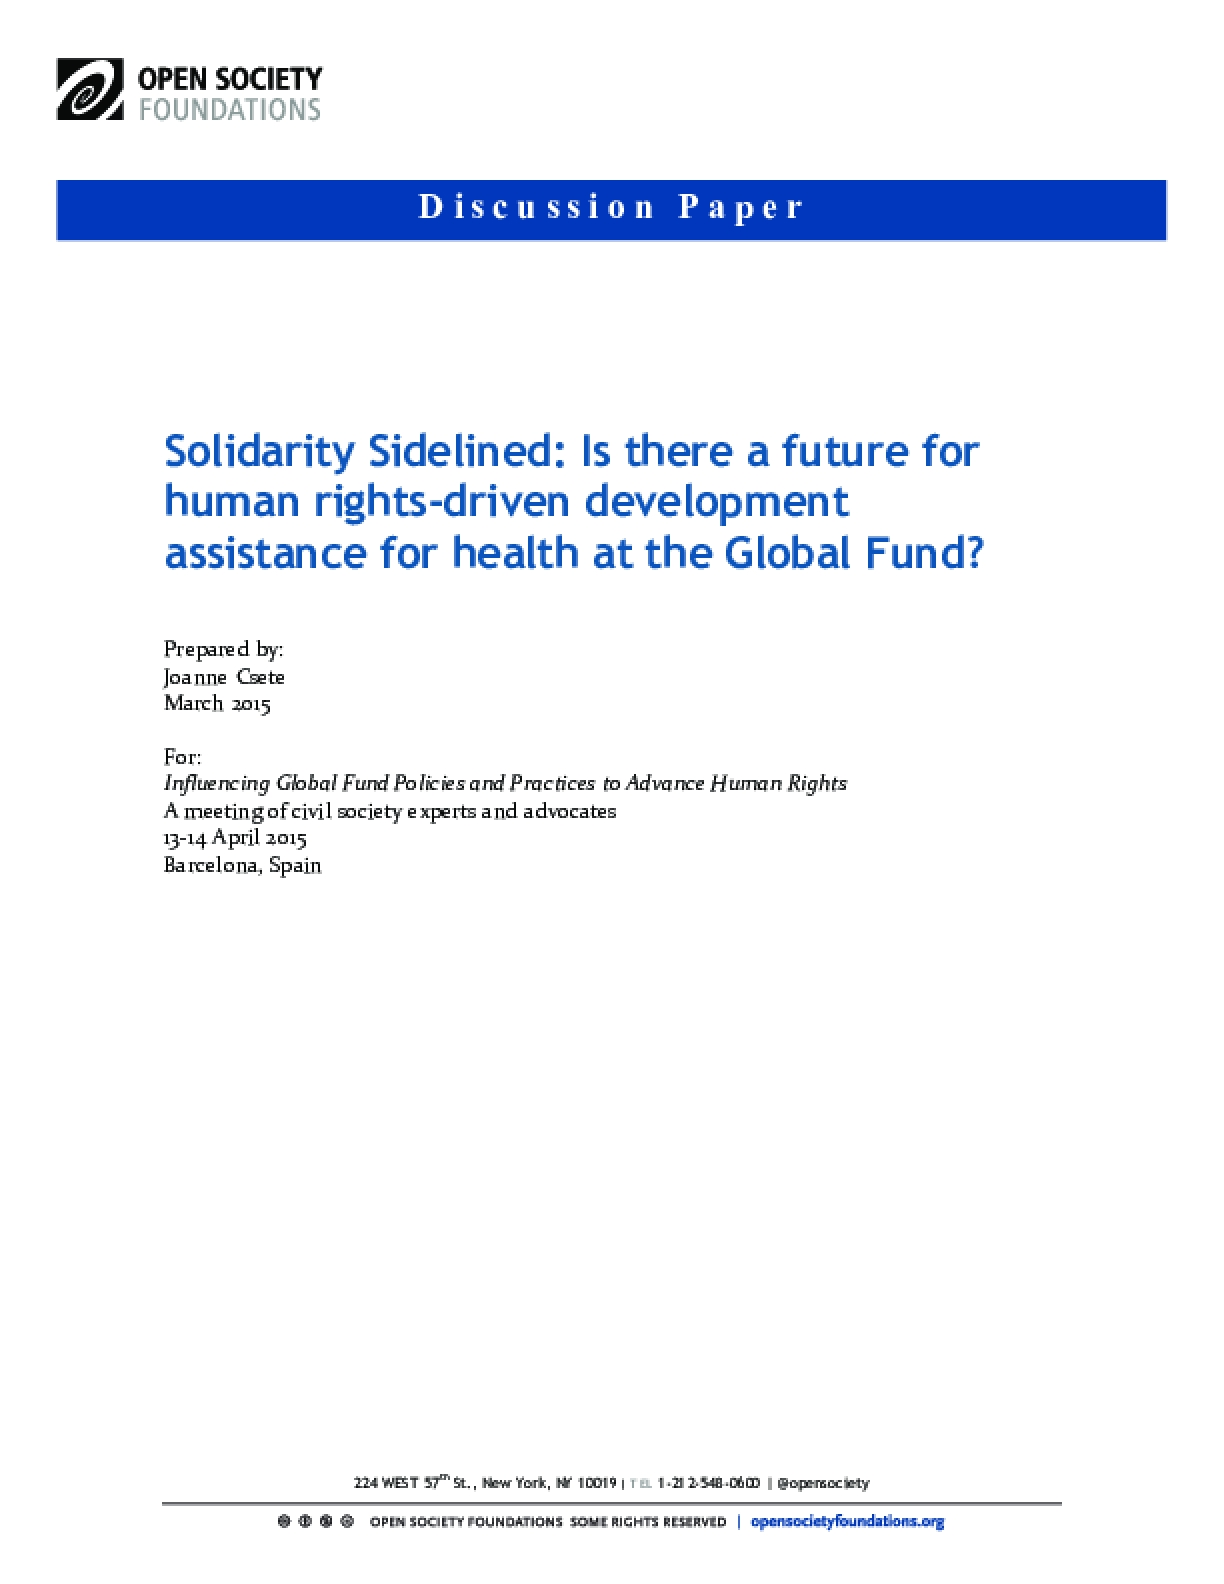 Solidarity Sidelined: Is There a Future for Human Rights-driven Development Assistance for Health at the Global Fund?